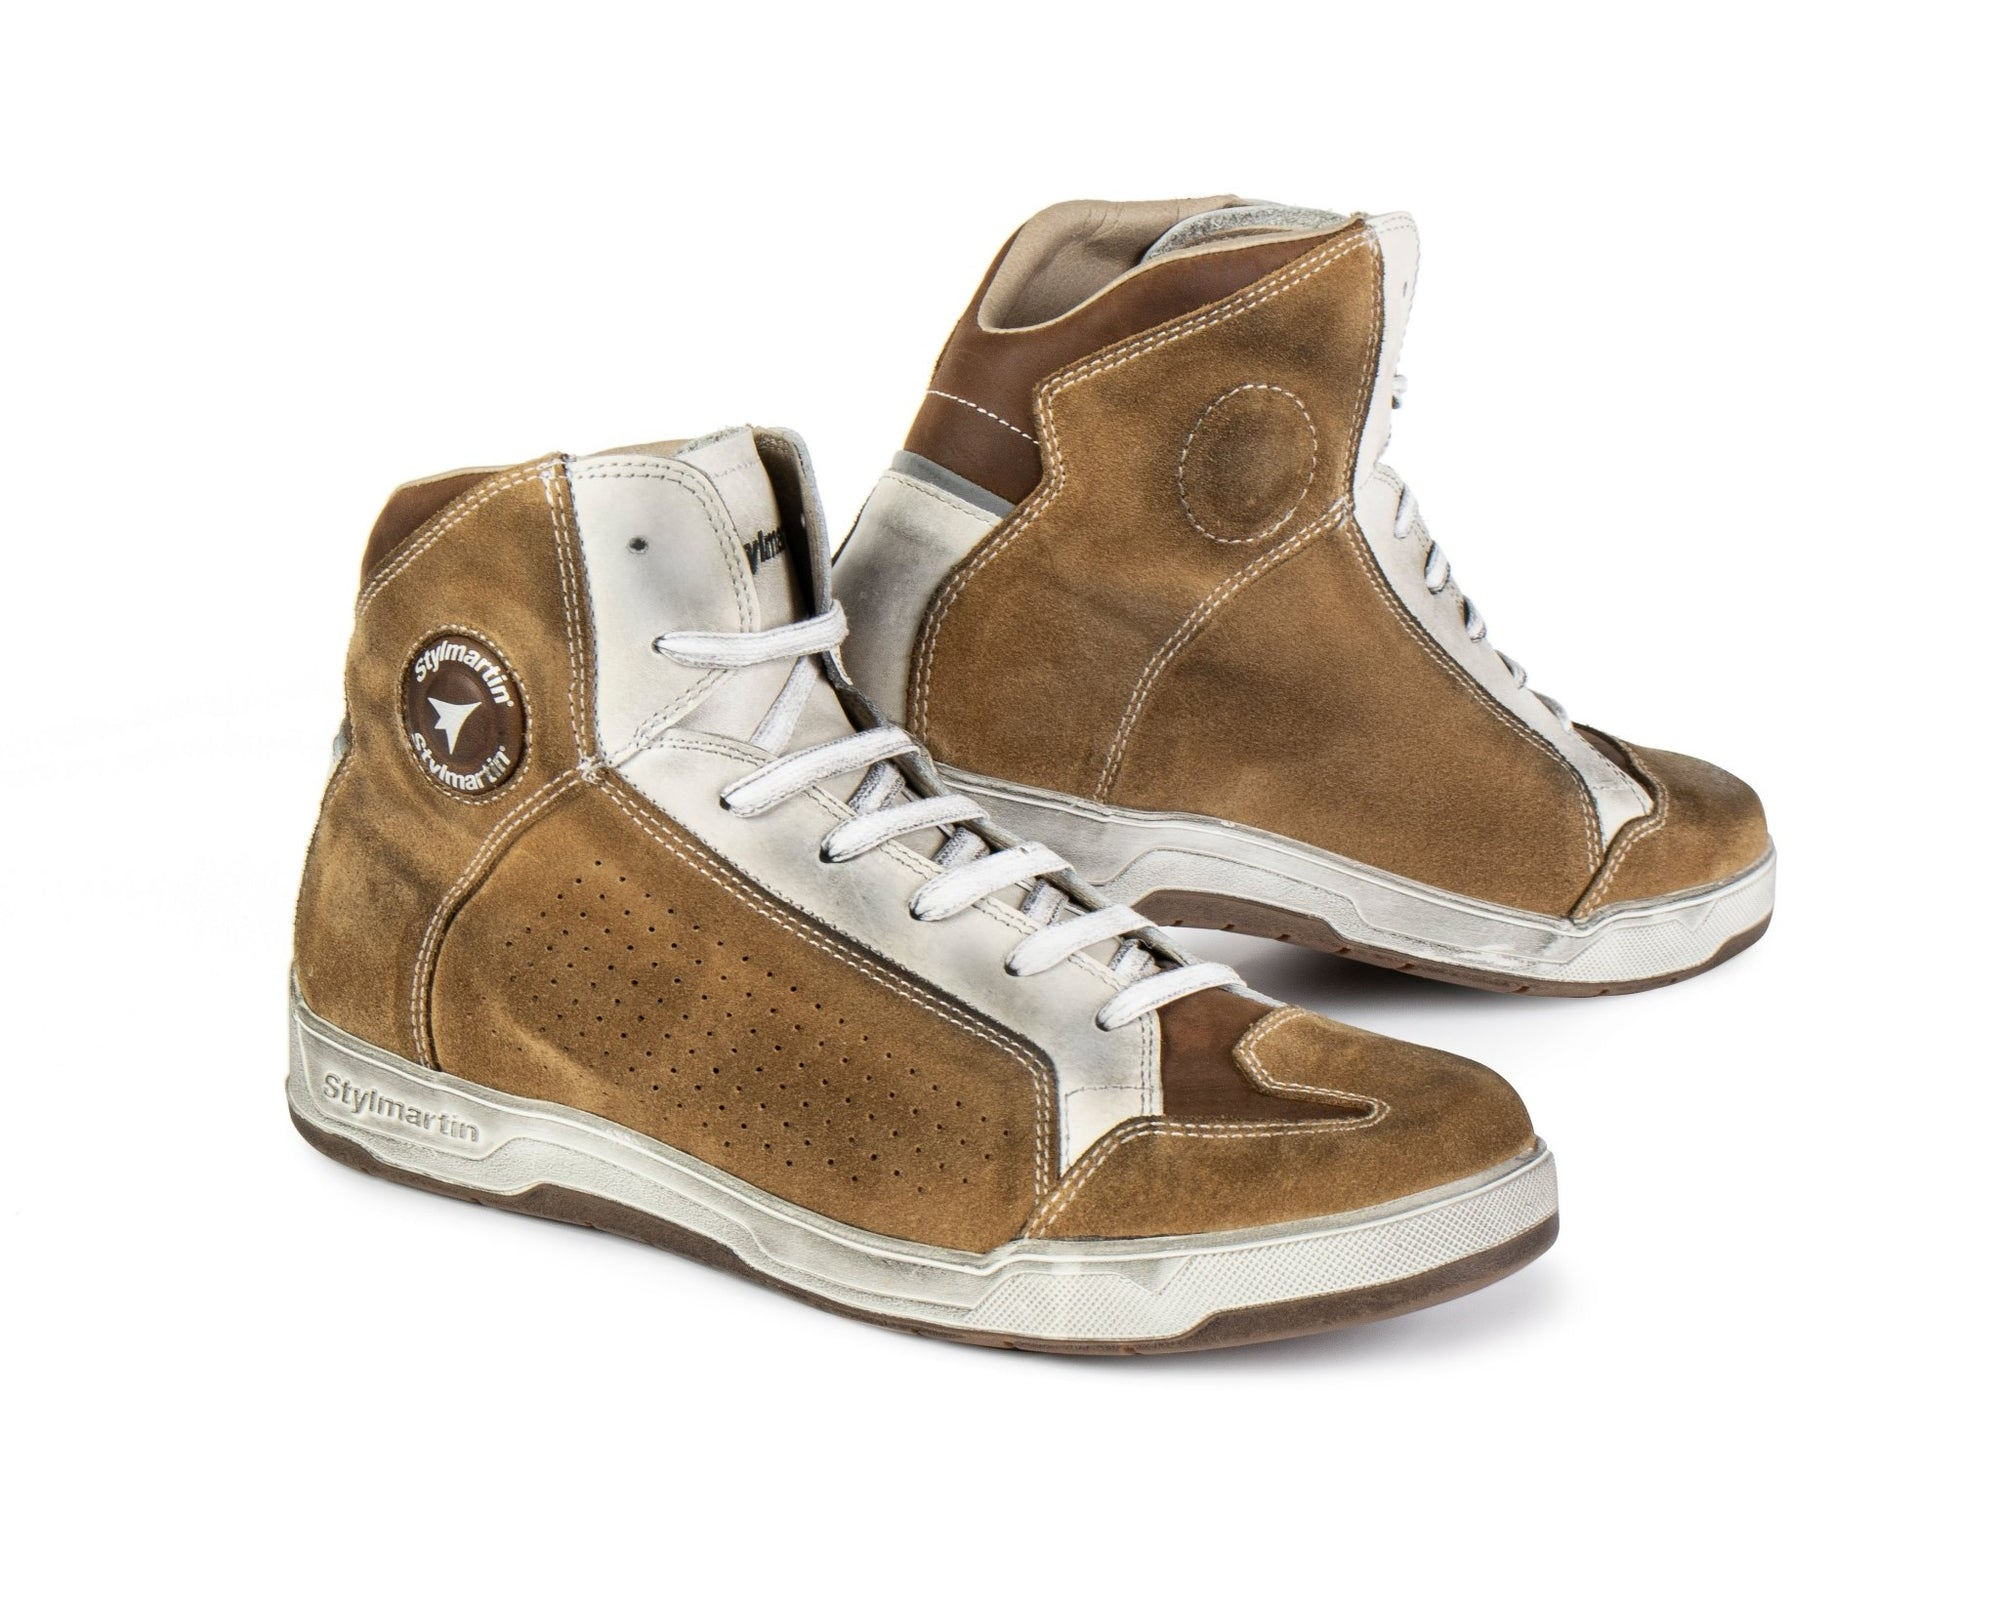 Stylmartin - Stylmartin Colorado Sneaker in Cognac - Boots - Salt Flats Clothing